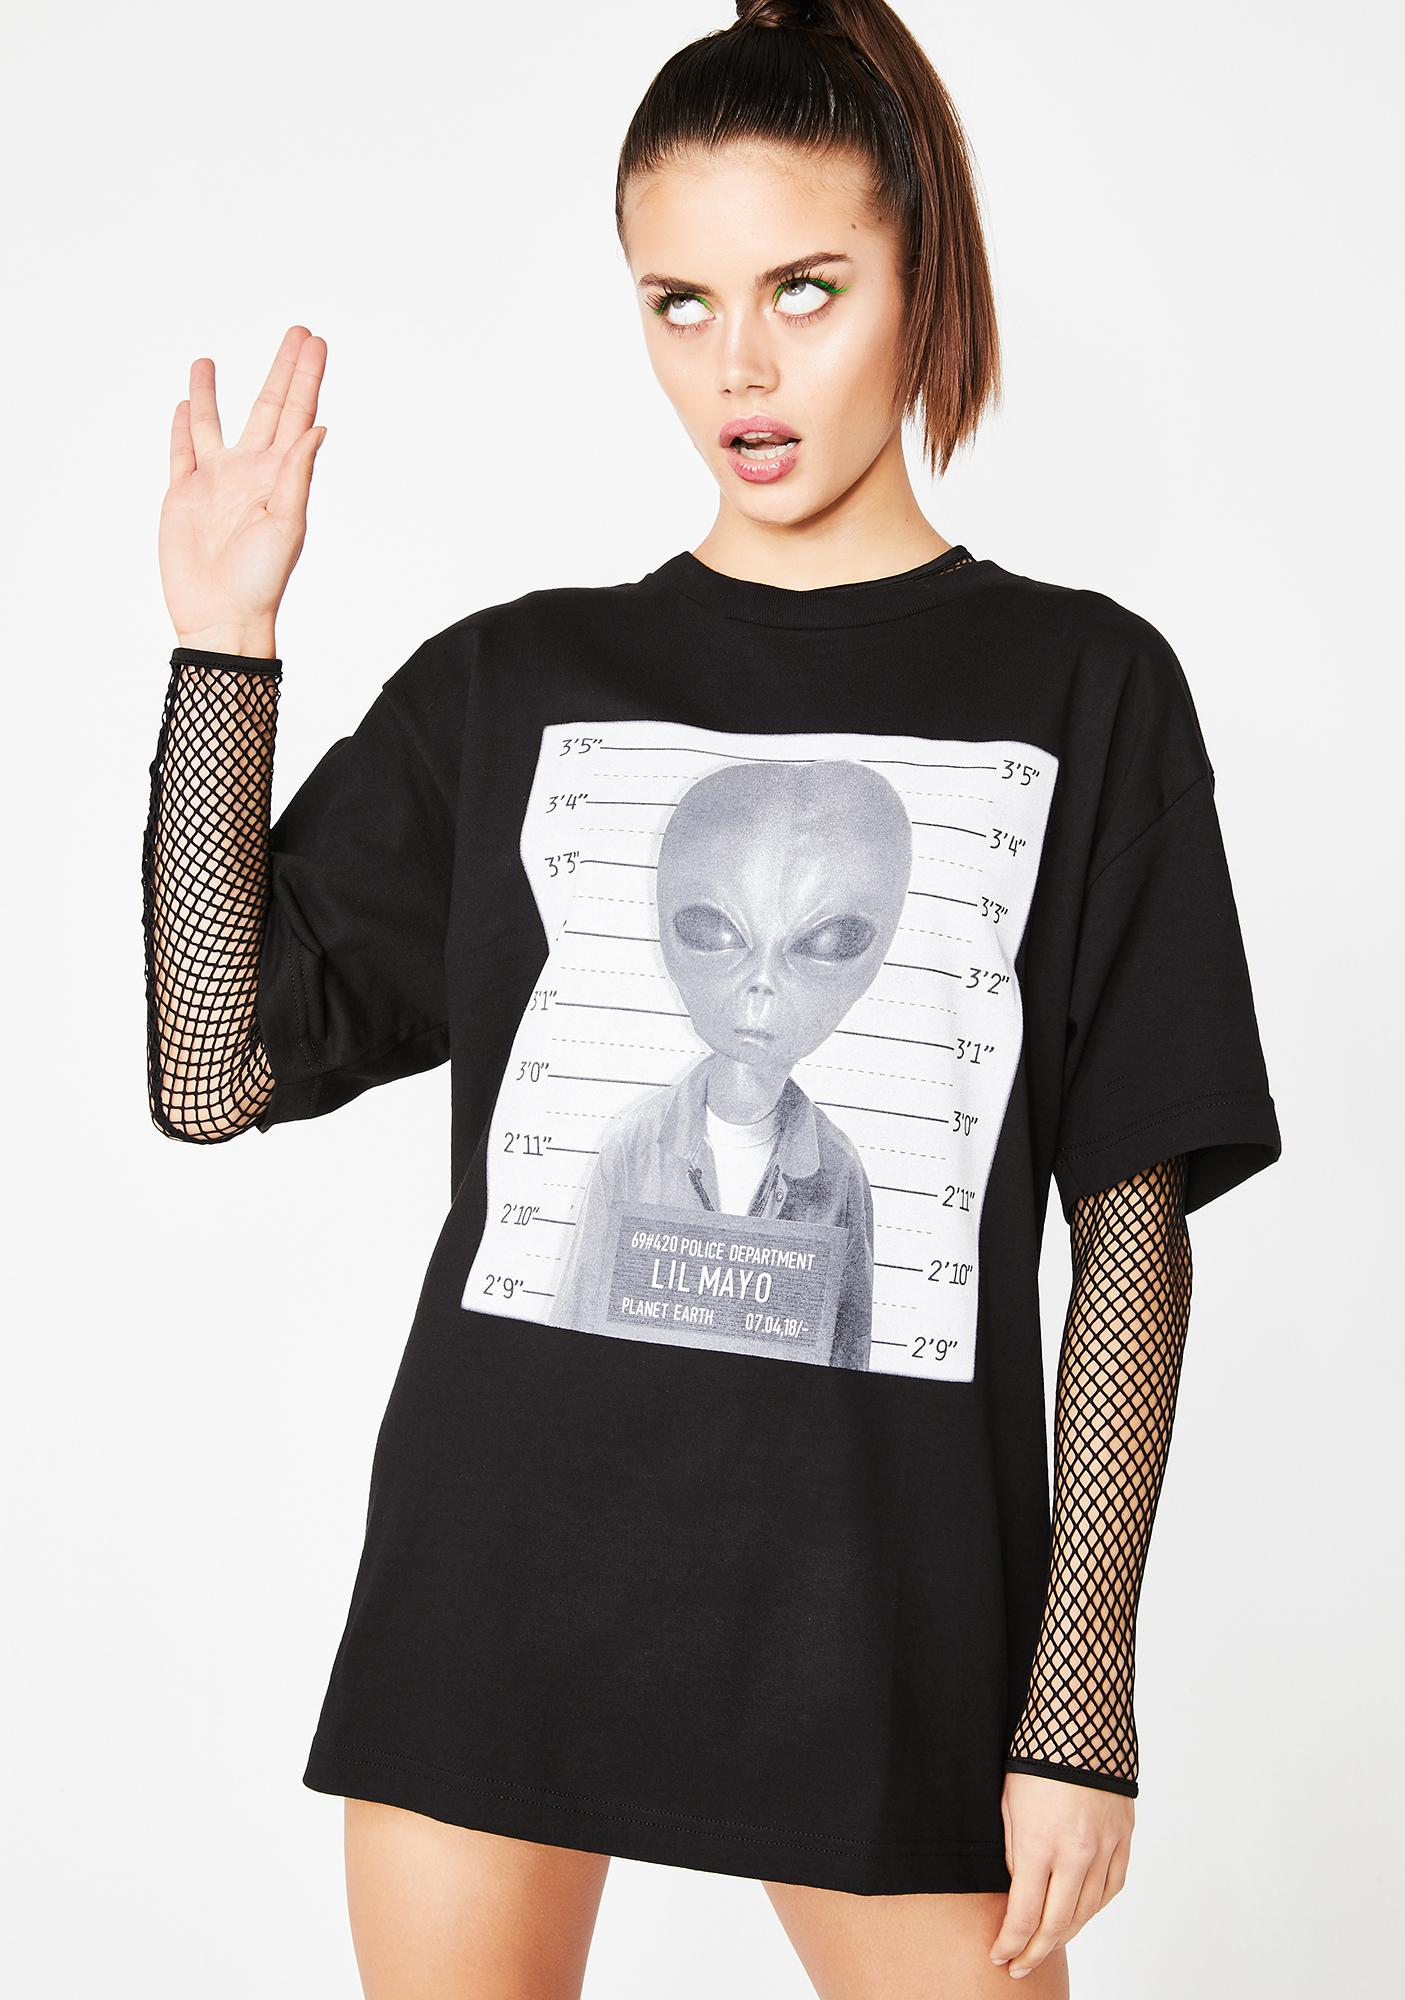 SUCC INTERNATIONAL Lil Mayo Mugshot Tee